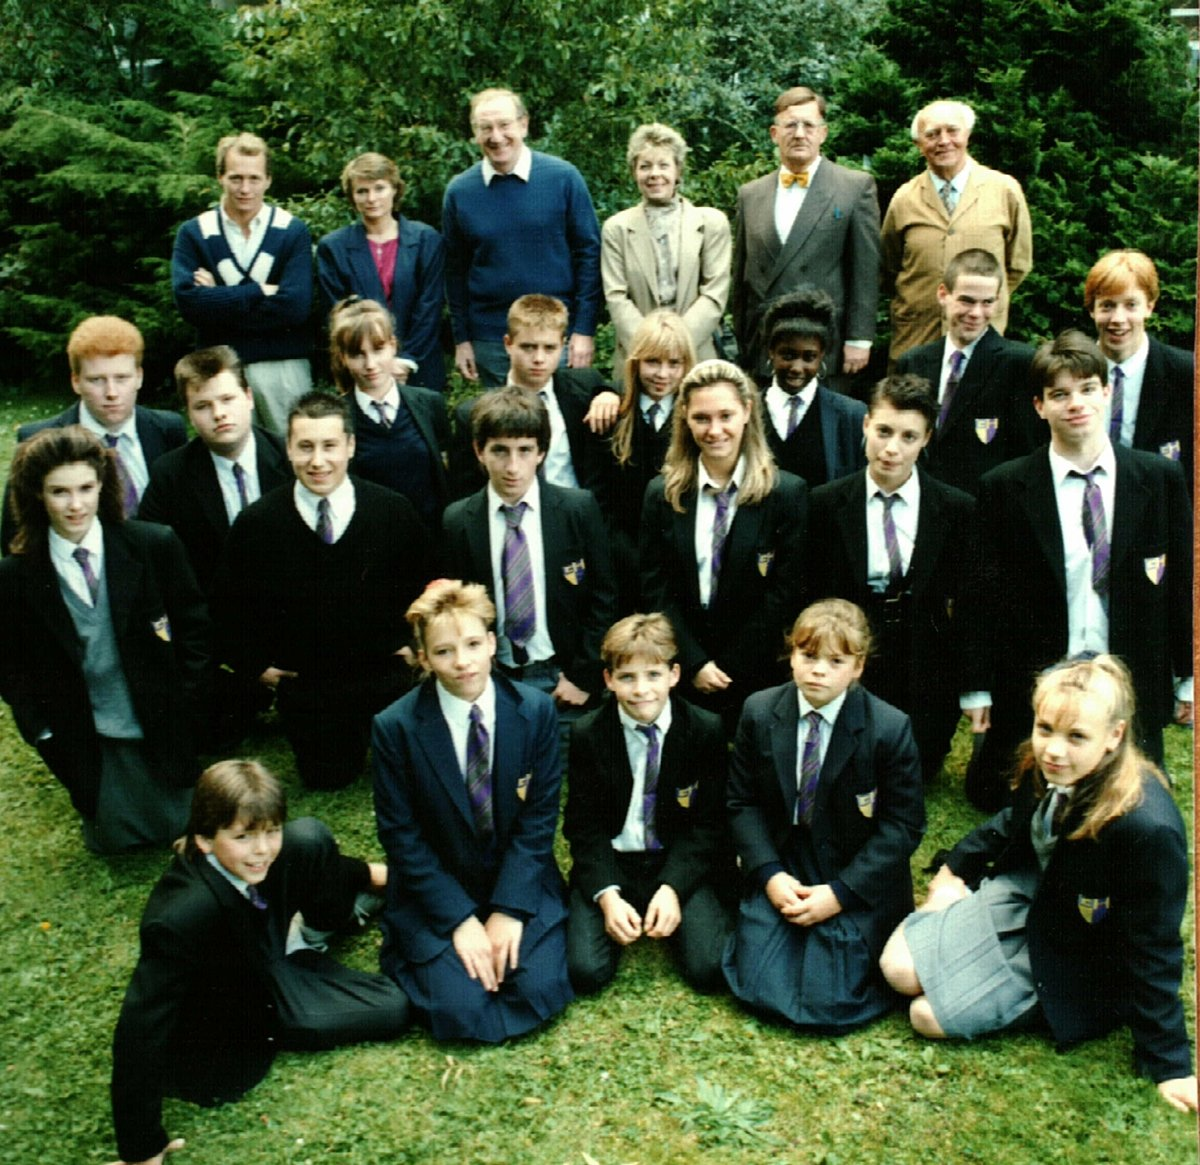 C 1 Grange Hill Fans Share Their Memories On The Show's 40th Anniversary